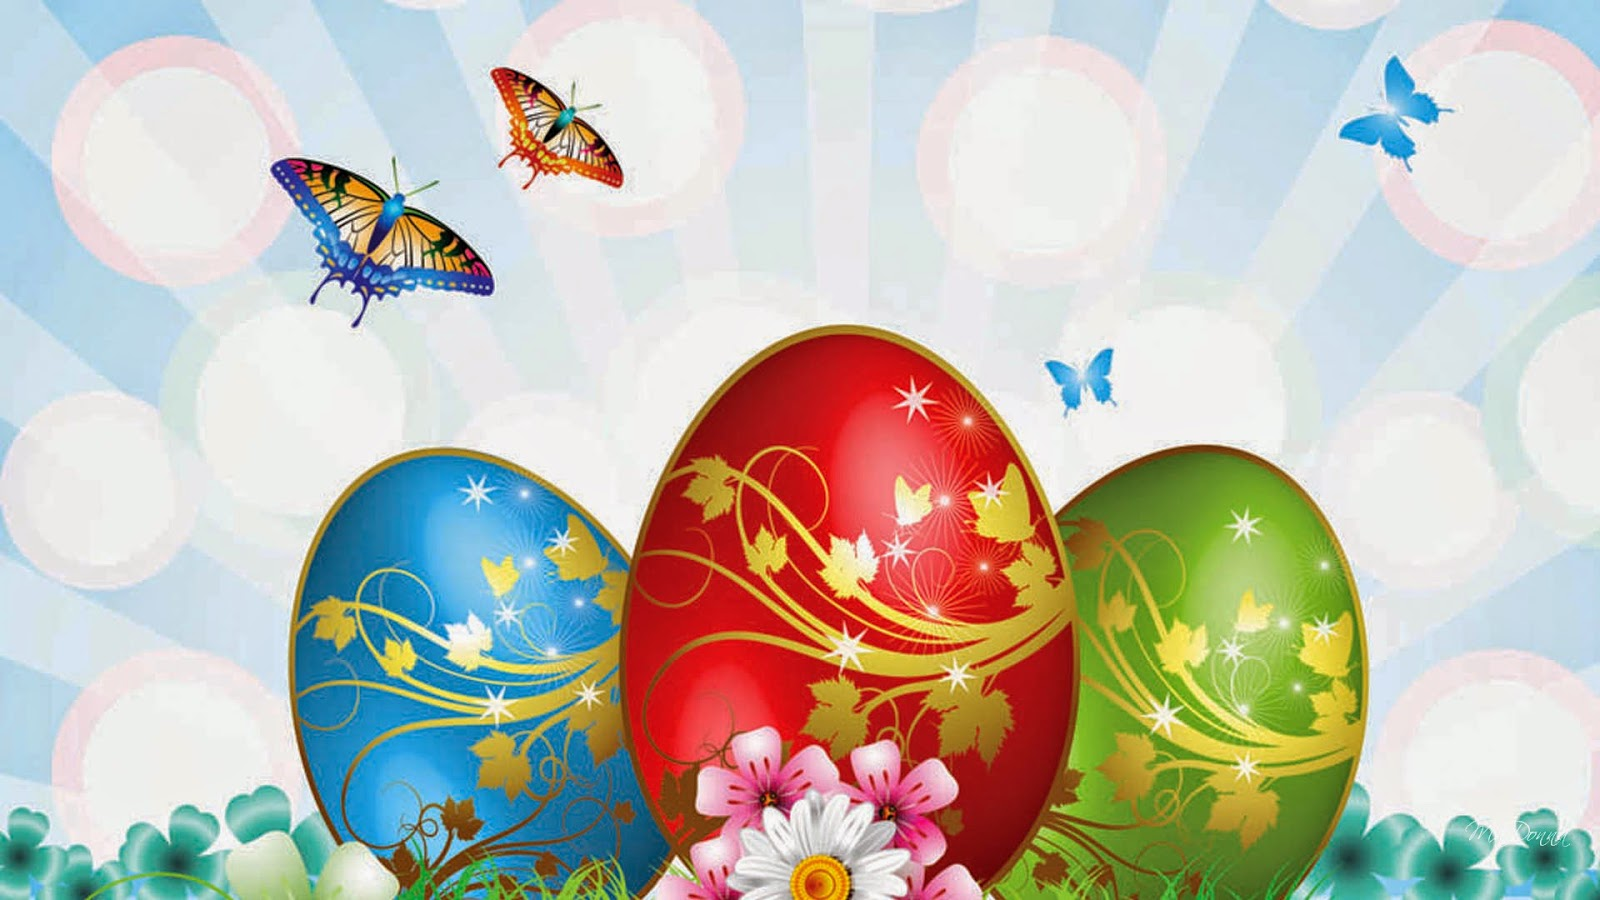 Easter Eggs Images Download 9To5AnimationsCom 1600x900